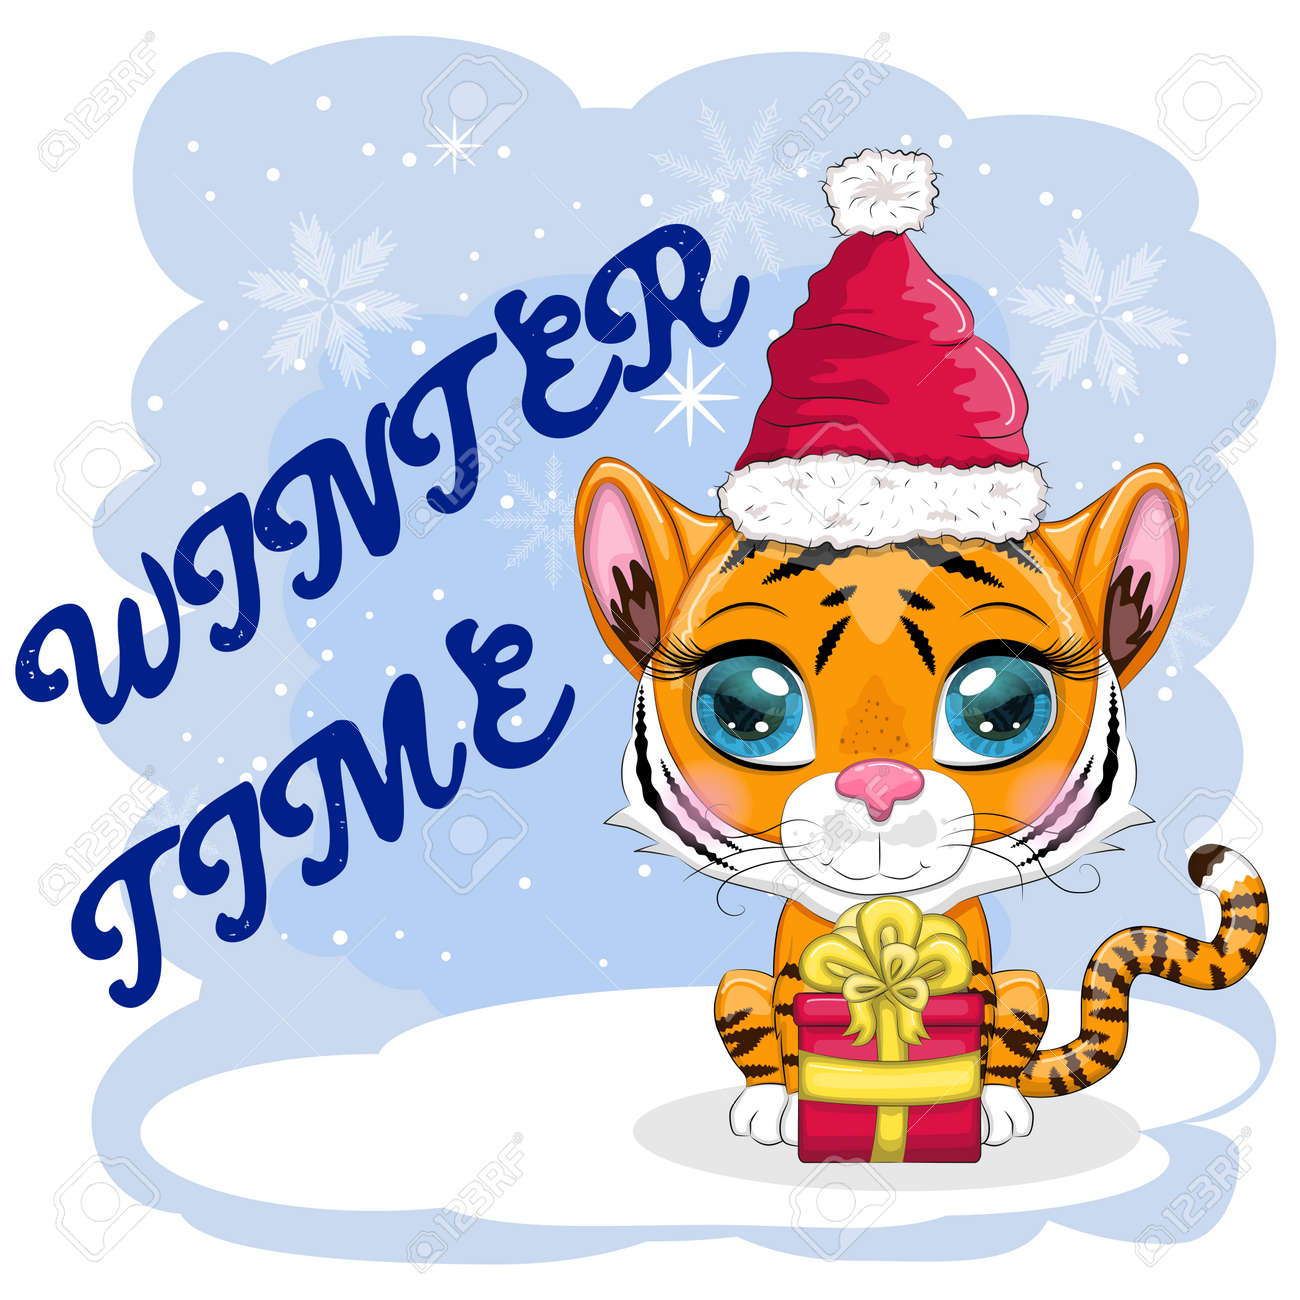 Cartoon tiger in a hat and scarf with a gift. Winter time. Children's style, sweetheart. The symbol of the New Year 2022. Greeting card - 170550051